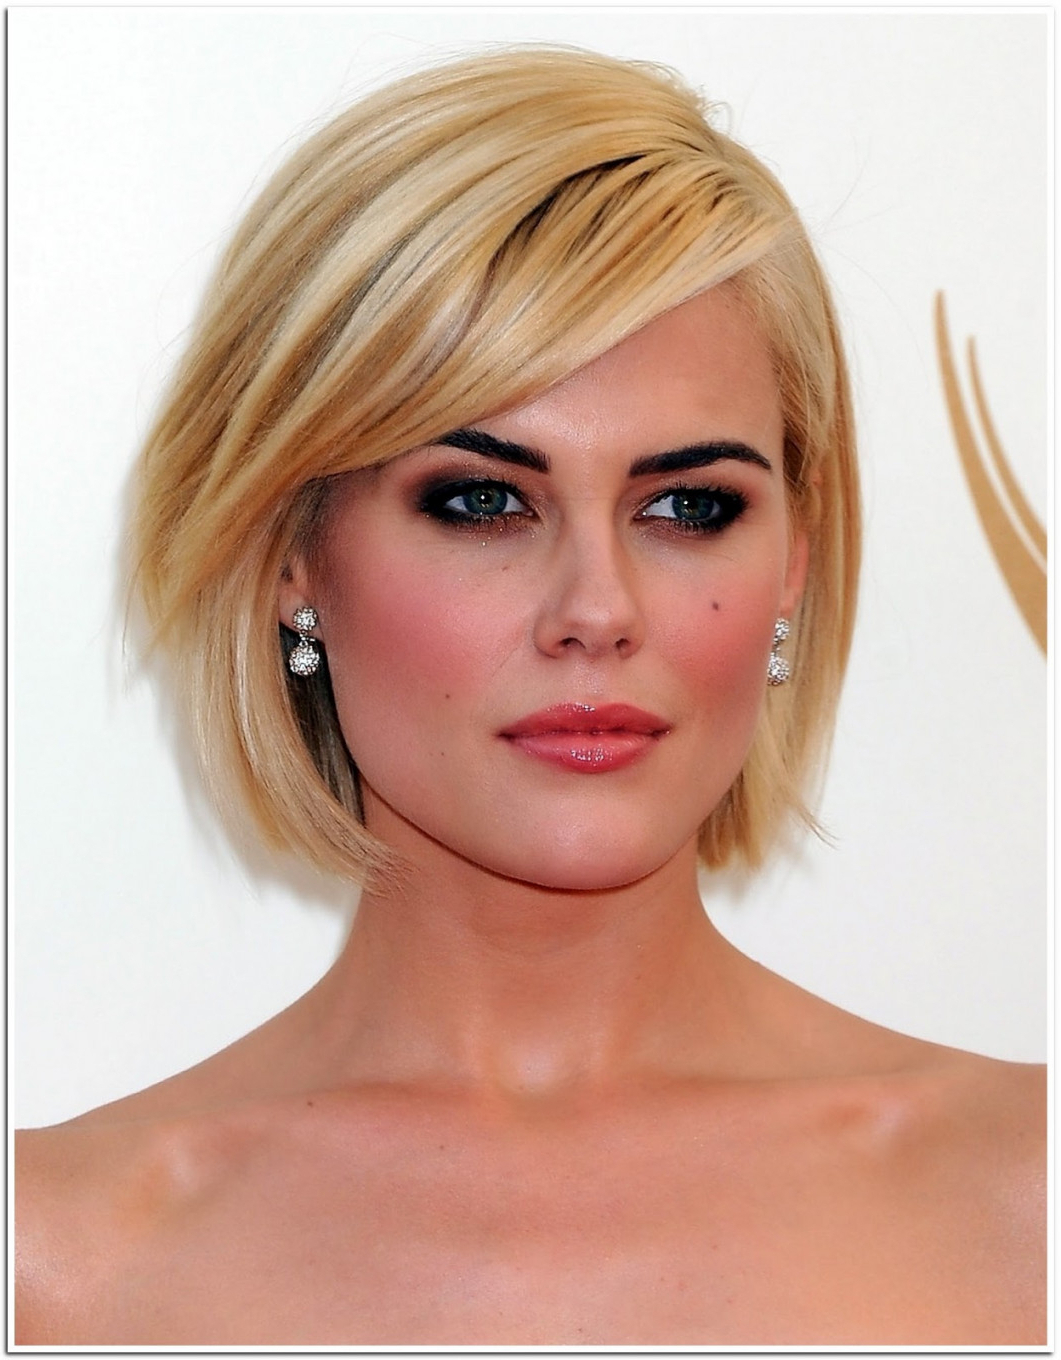 Wonderful Formal Hairstyles For Short Hair 2014 | Latest Hairstyles Within Short Formal Hairstyles (View 20 of 20)